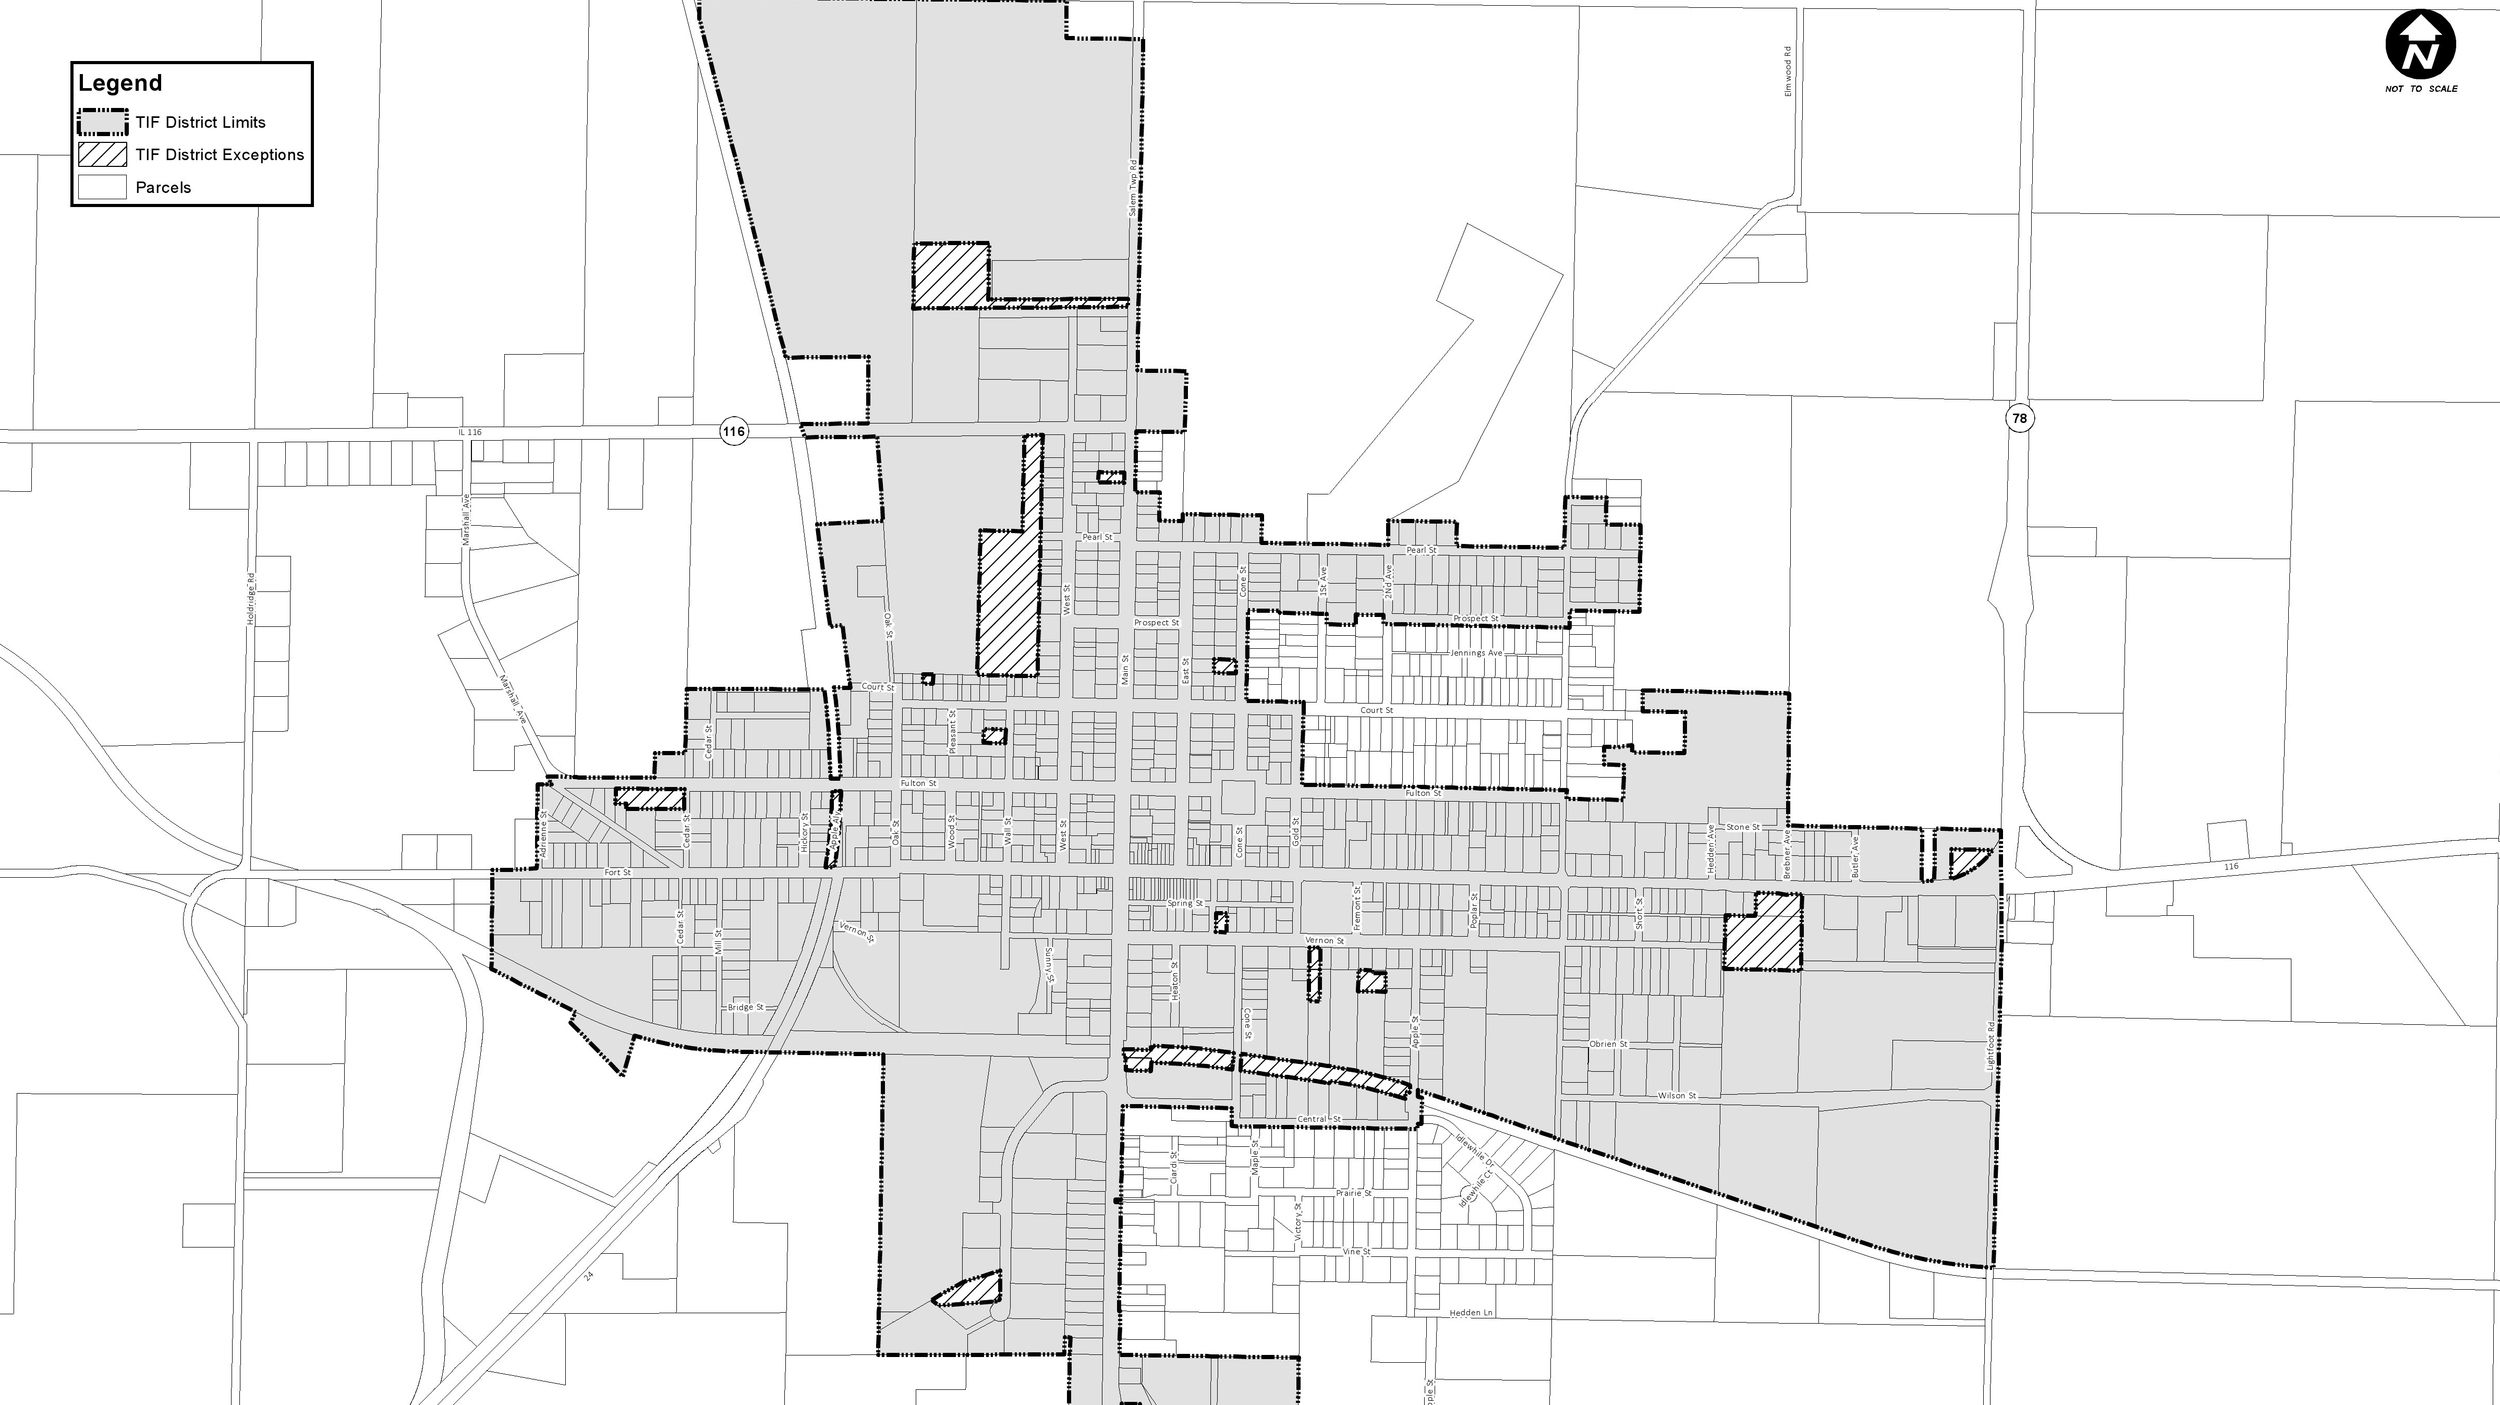 Farmington - TIF District Limits.jpg